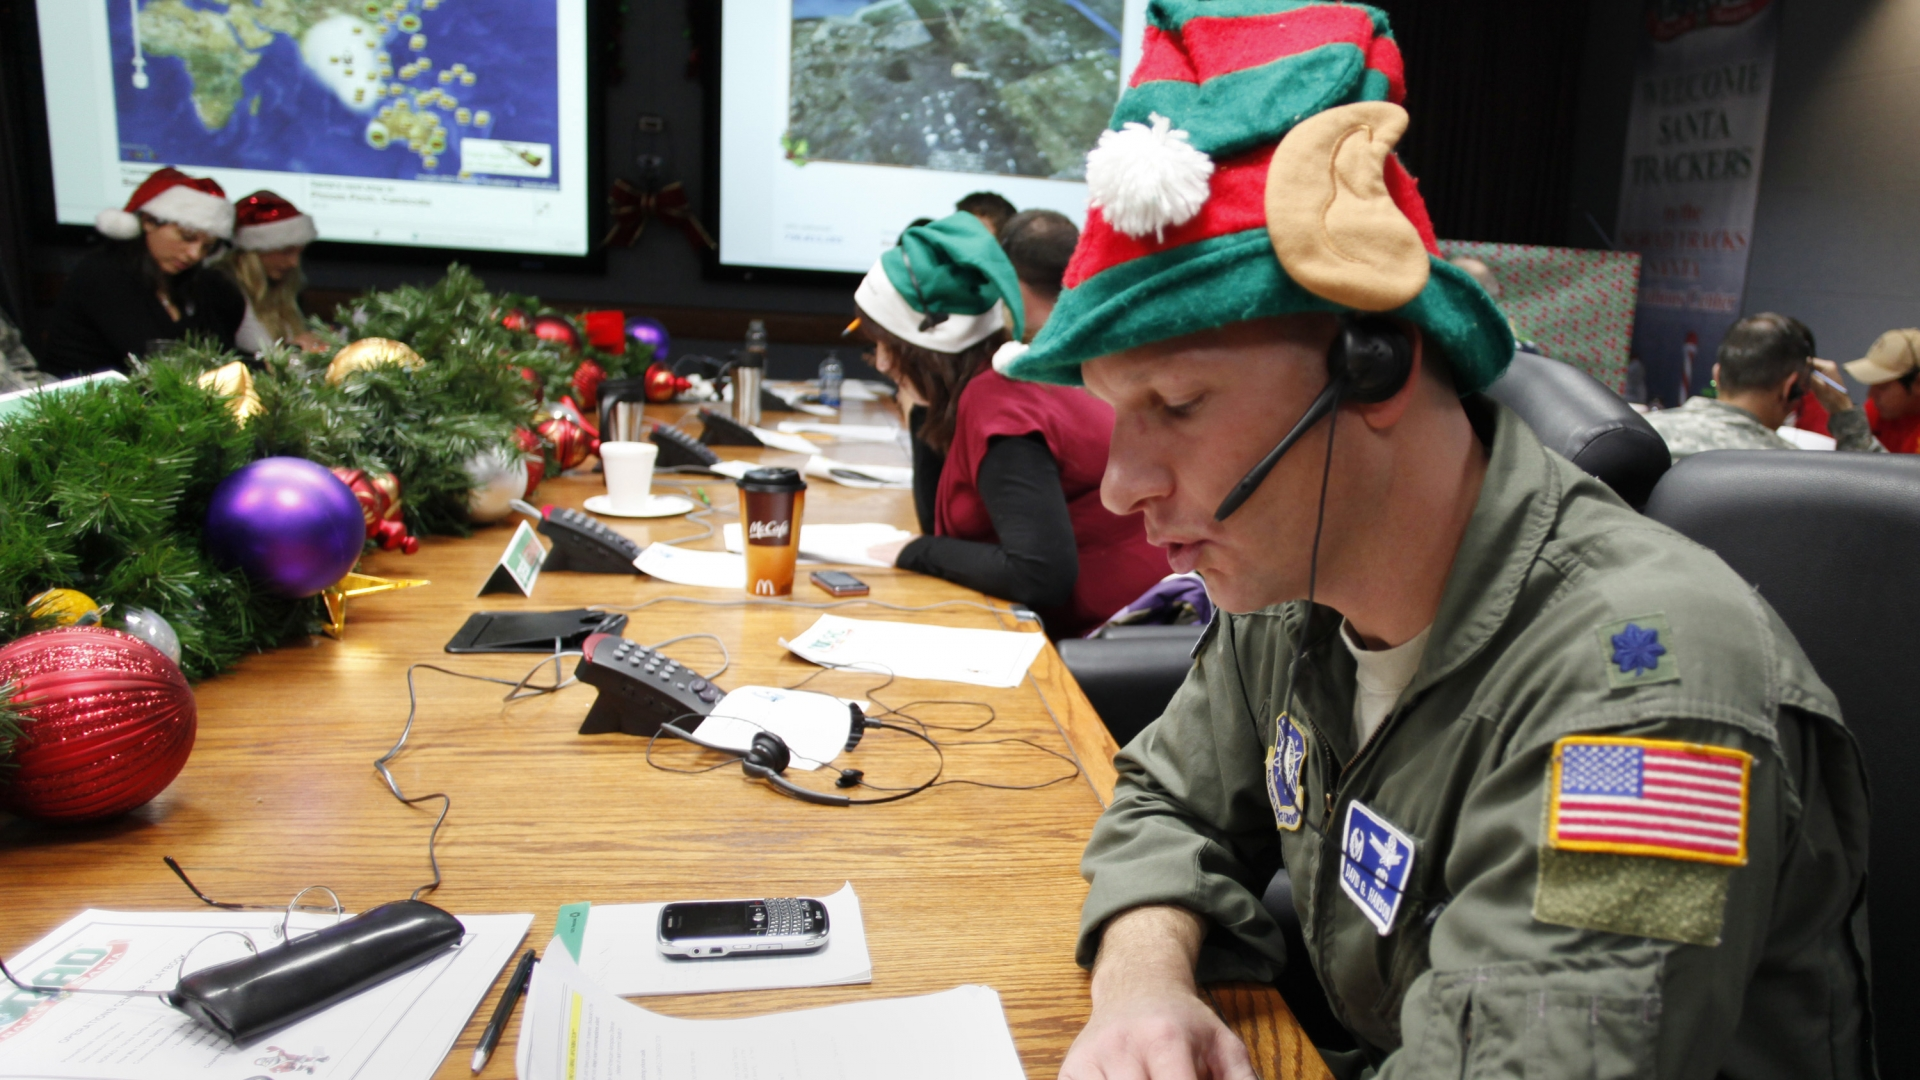 Air Force Lt. Col. David Hanson of Chicago taking a phone call from a child in Florida at the Santa Tracking Operations Center at Peterson Air Force Base near Colorado Springs. (Credit: Ed Andrieski/AP Photo)